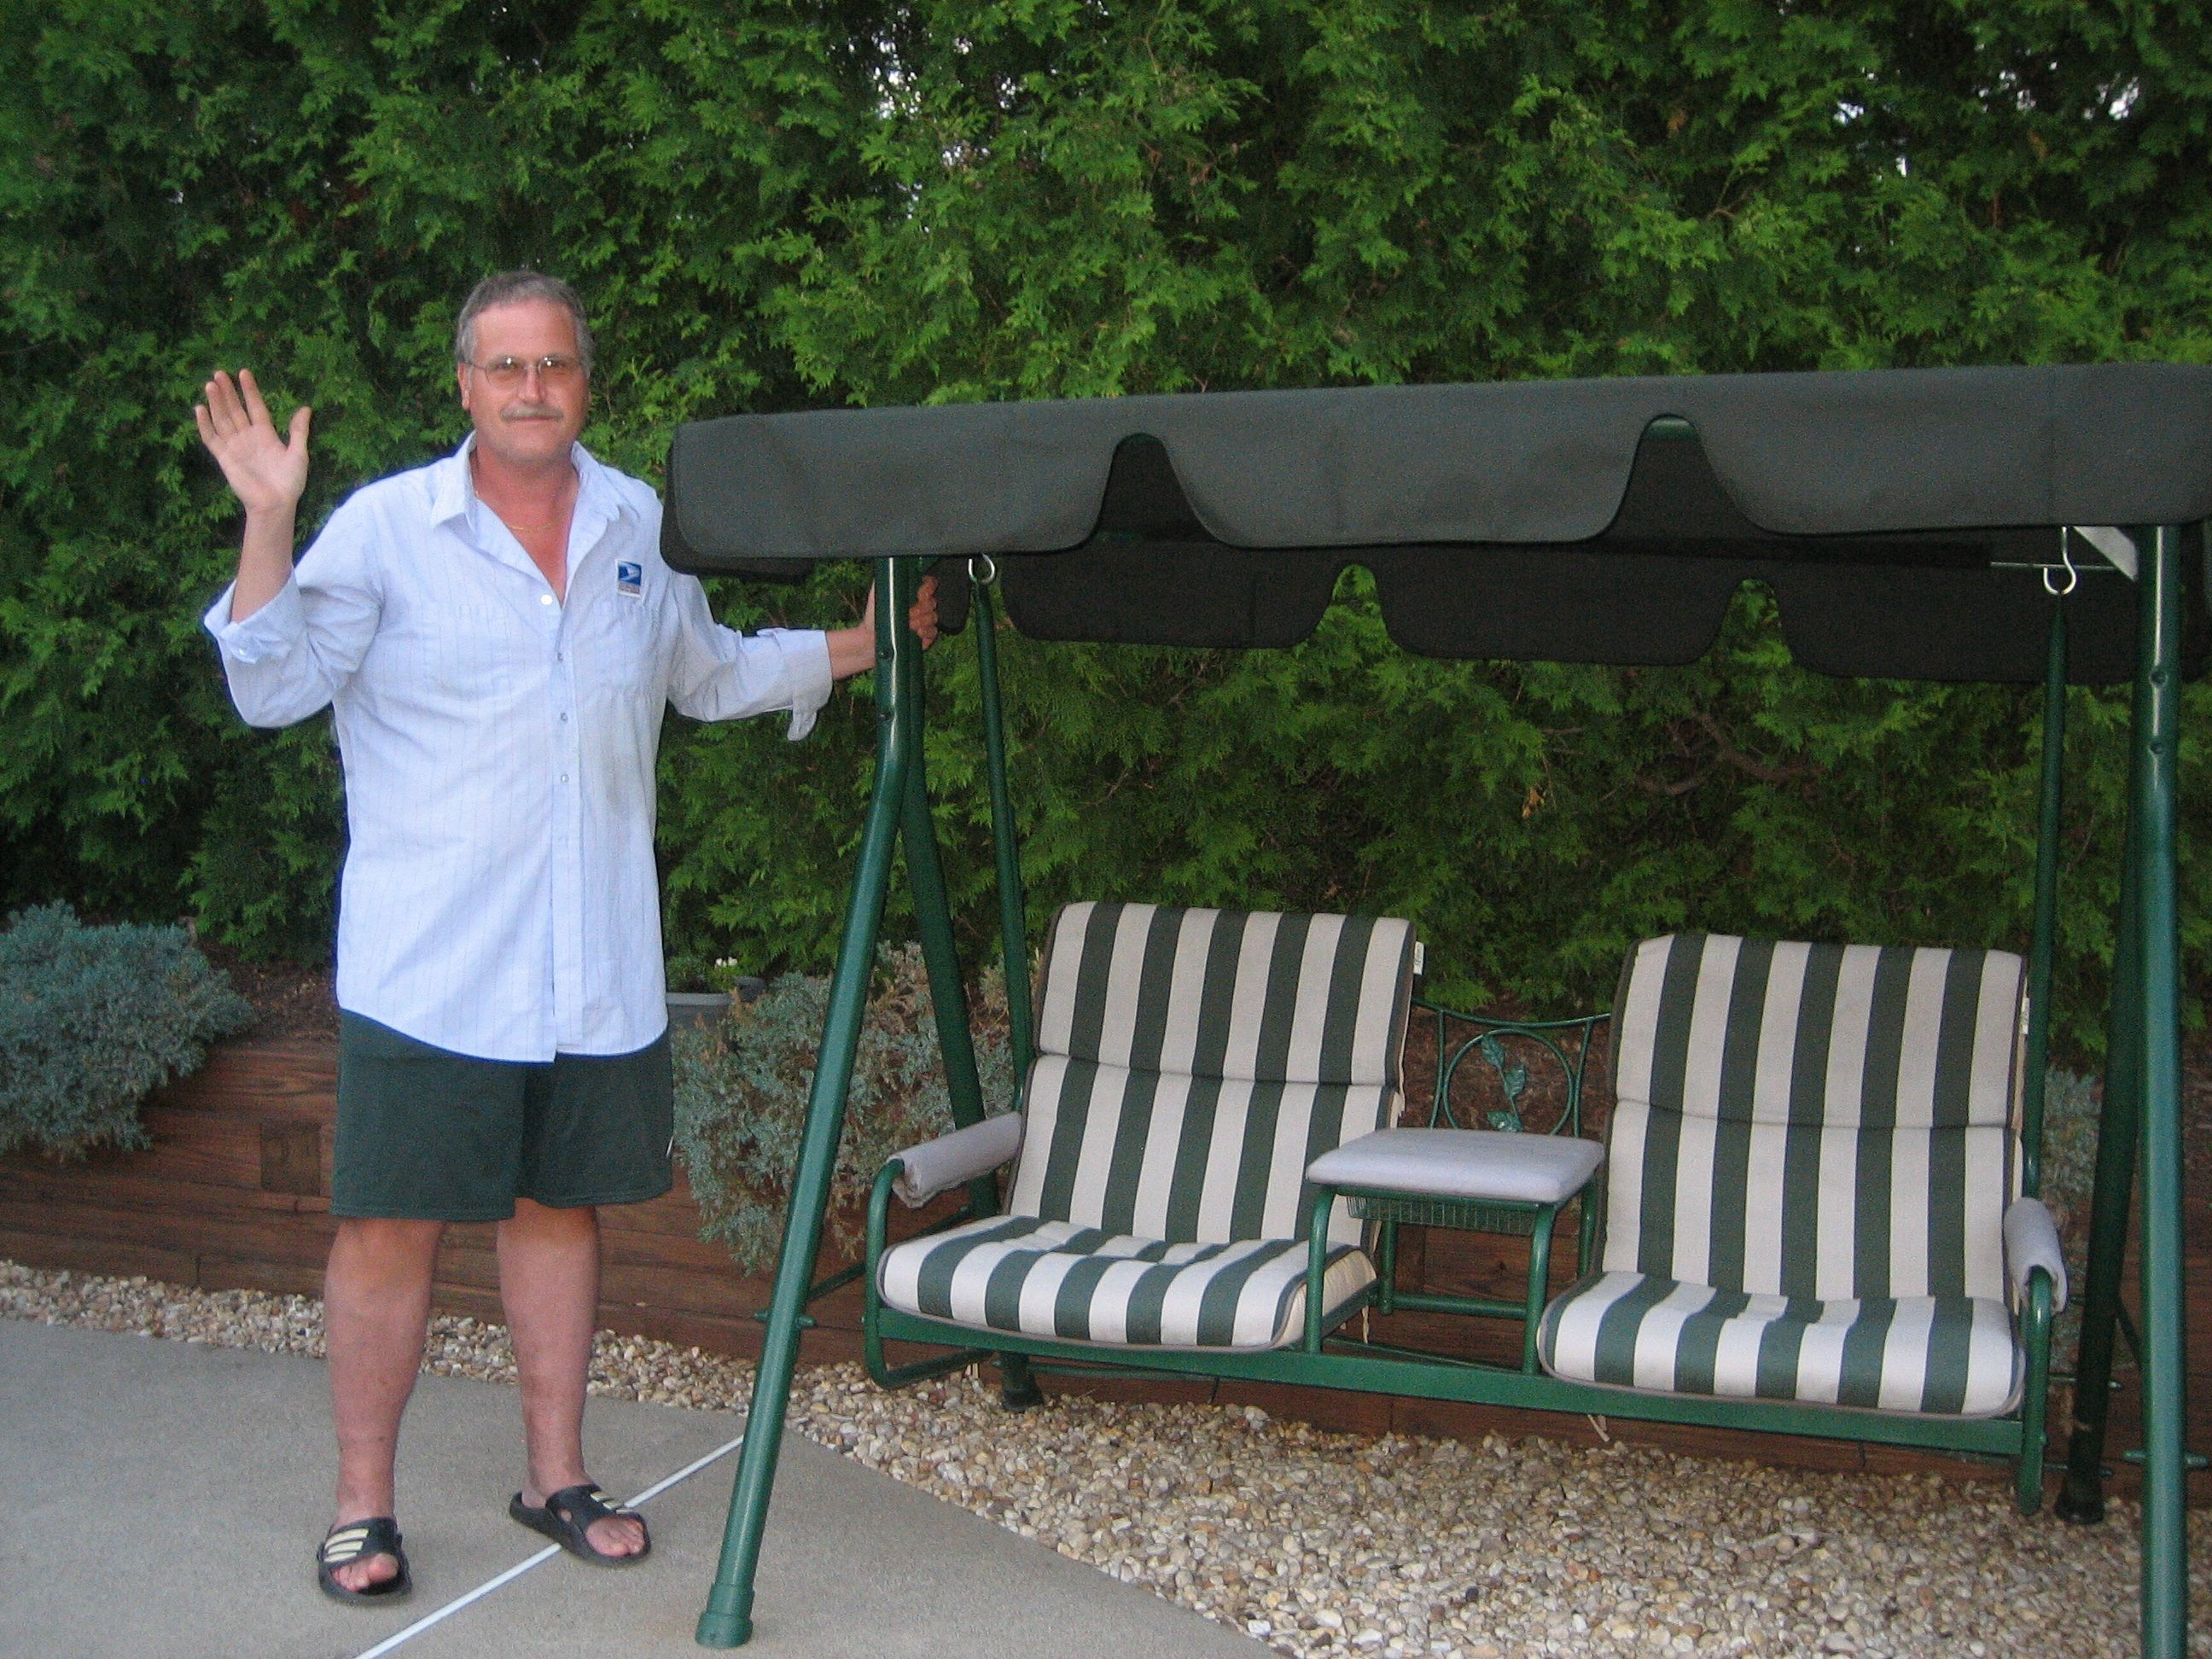 Happy Customer with replacement canopy for Walmart 2 seat swing - Sunbrella fabric comes with a  sc 1 st  Pinterest & Happy Customer with replacement canopy for Walmart 2 seat swing ...